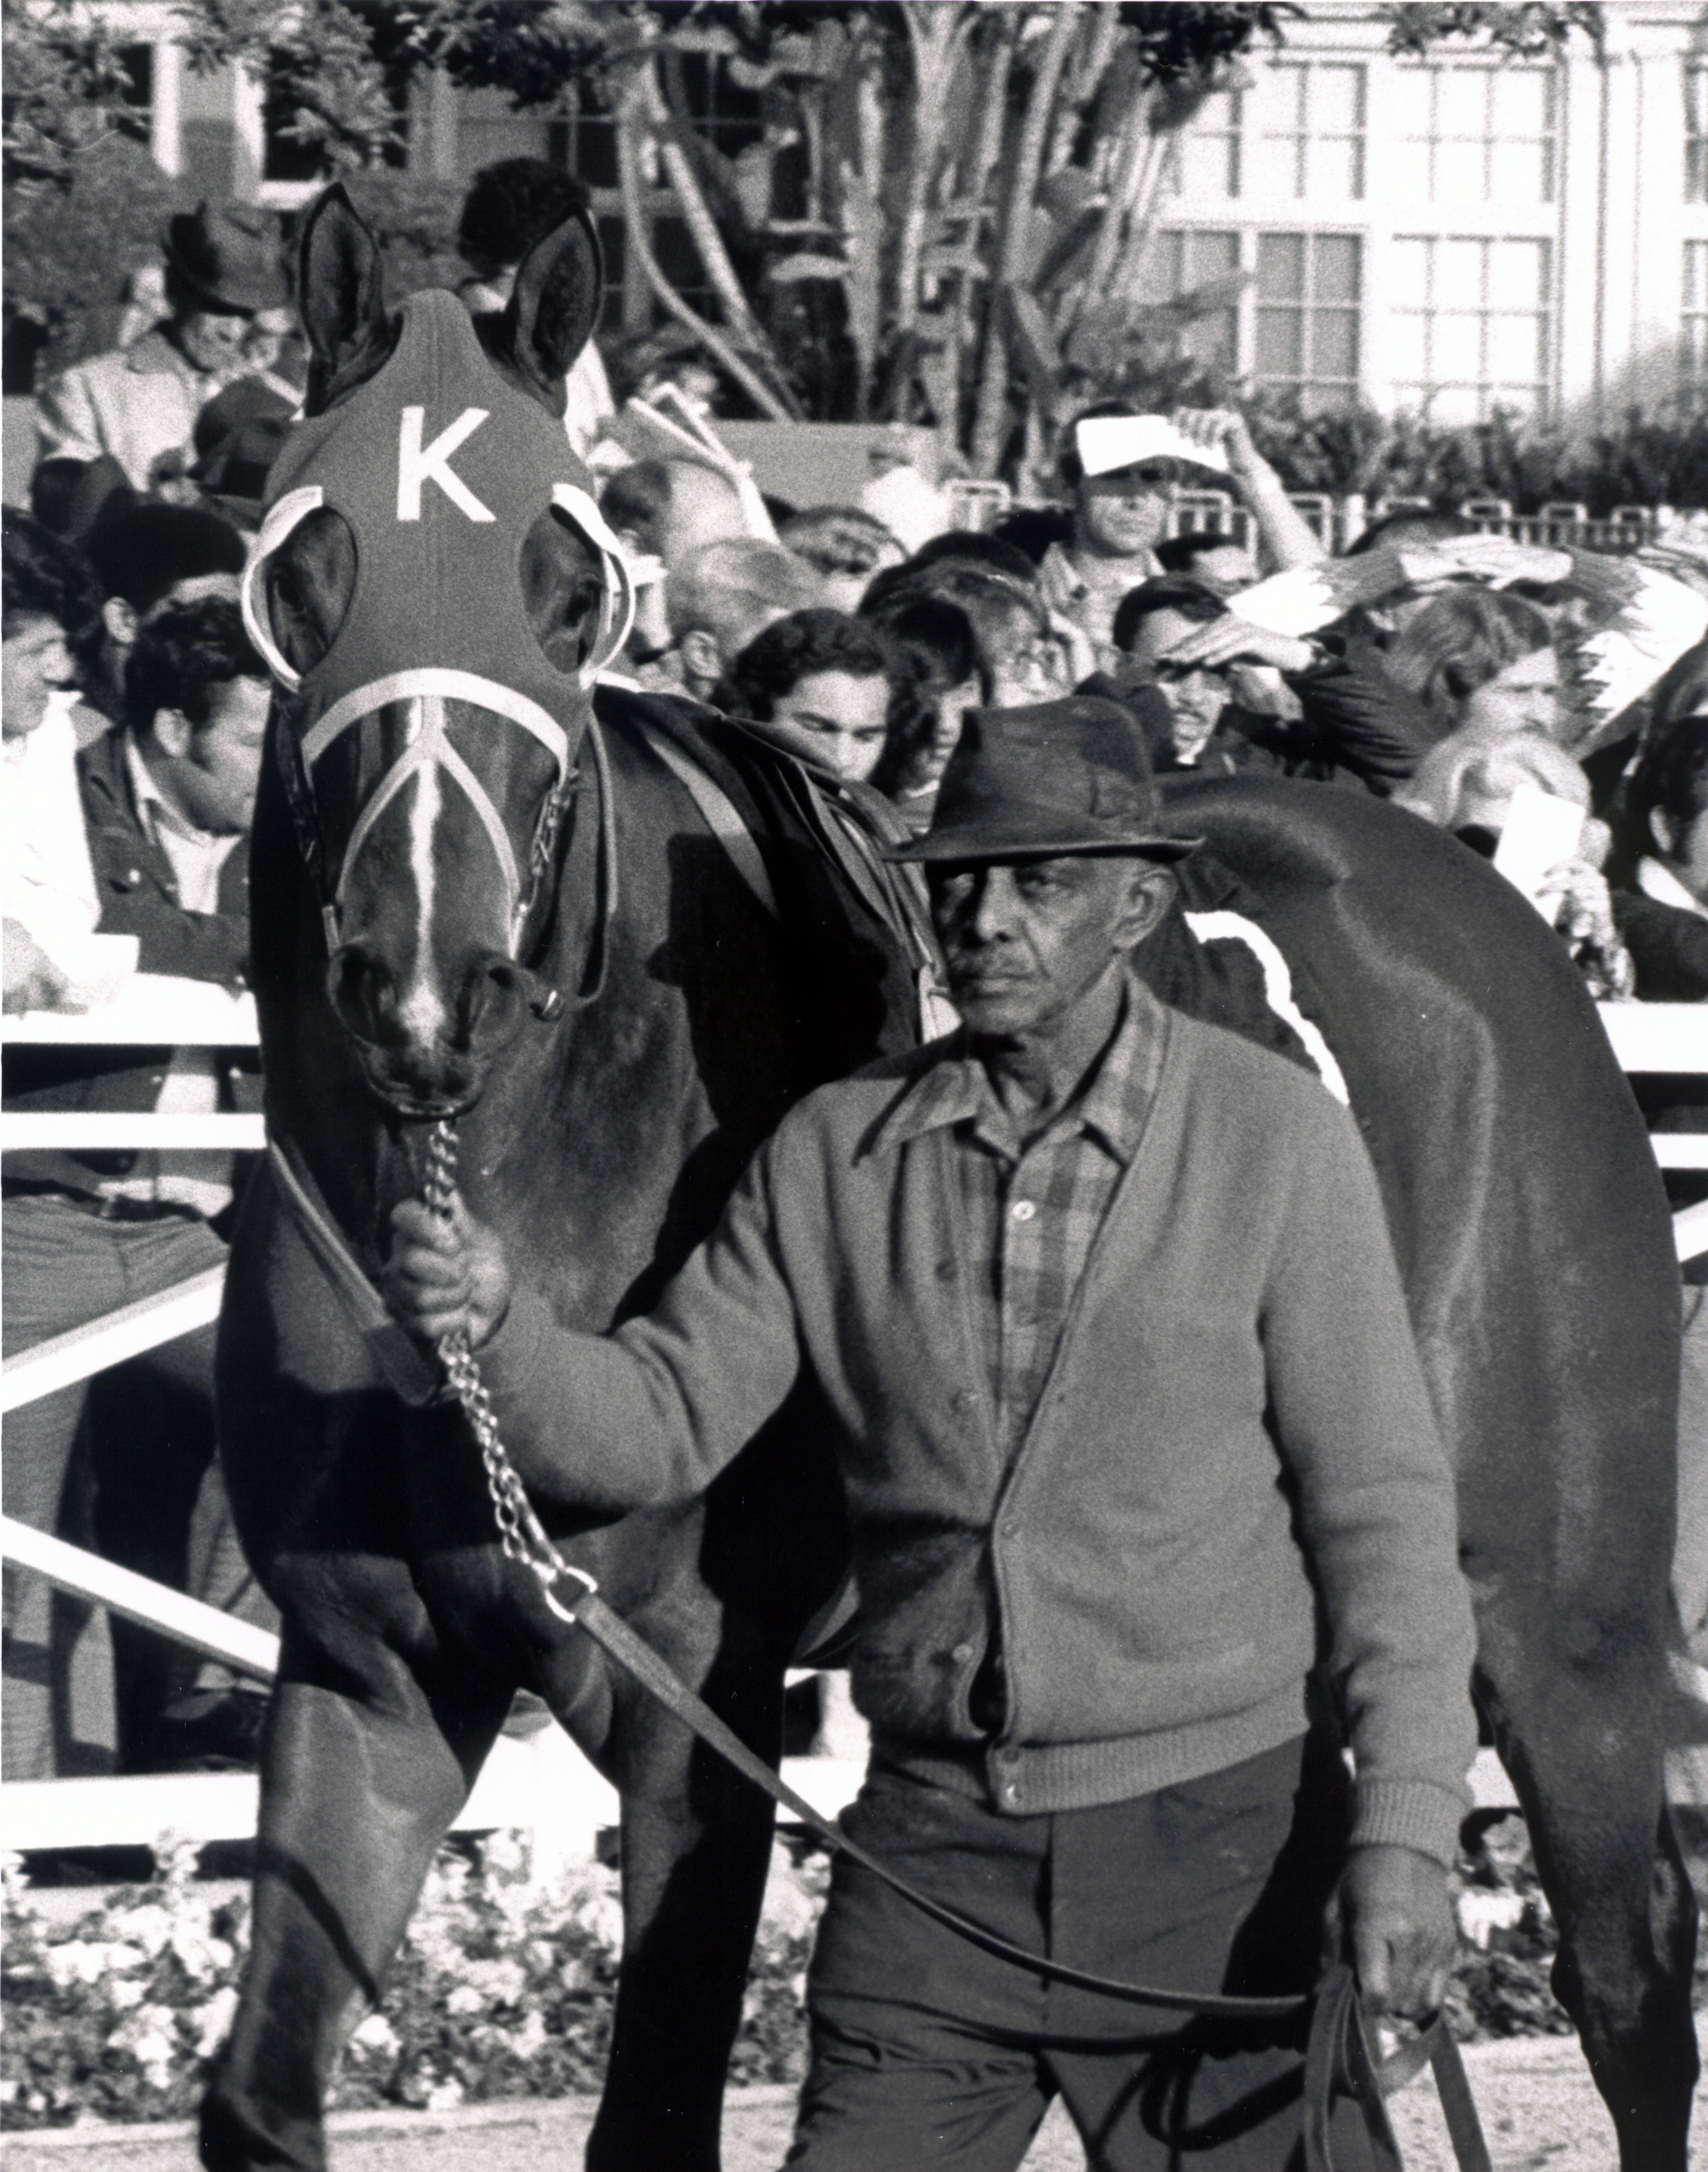 Ancient Title in the Santa Anita paddock (Bill Mochon/Museum Collection)